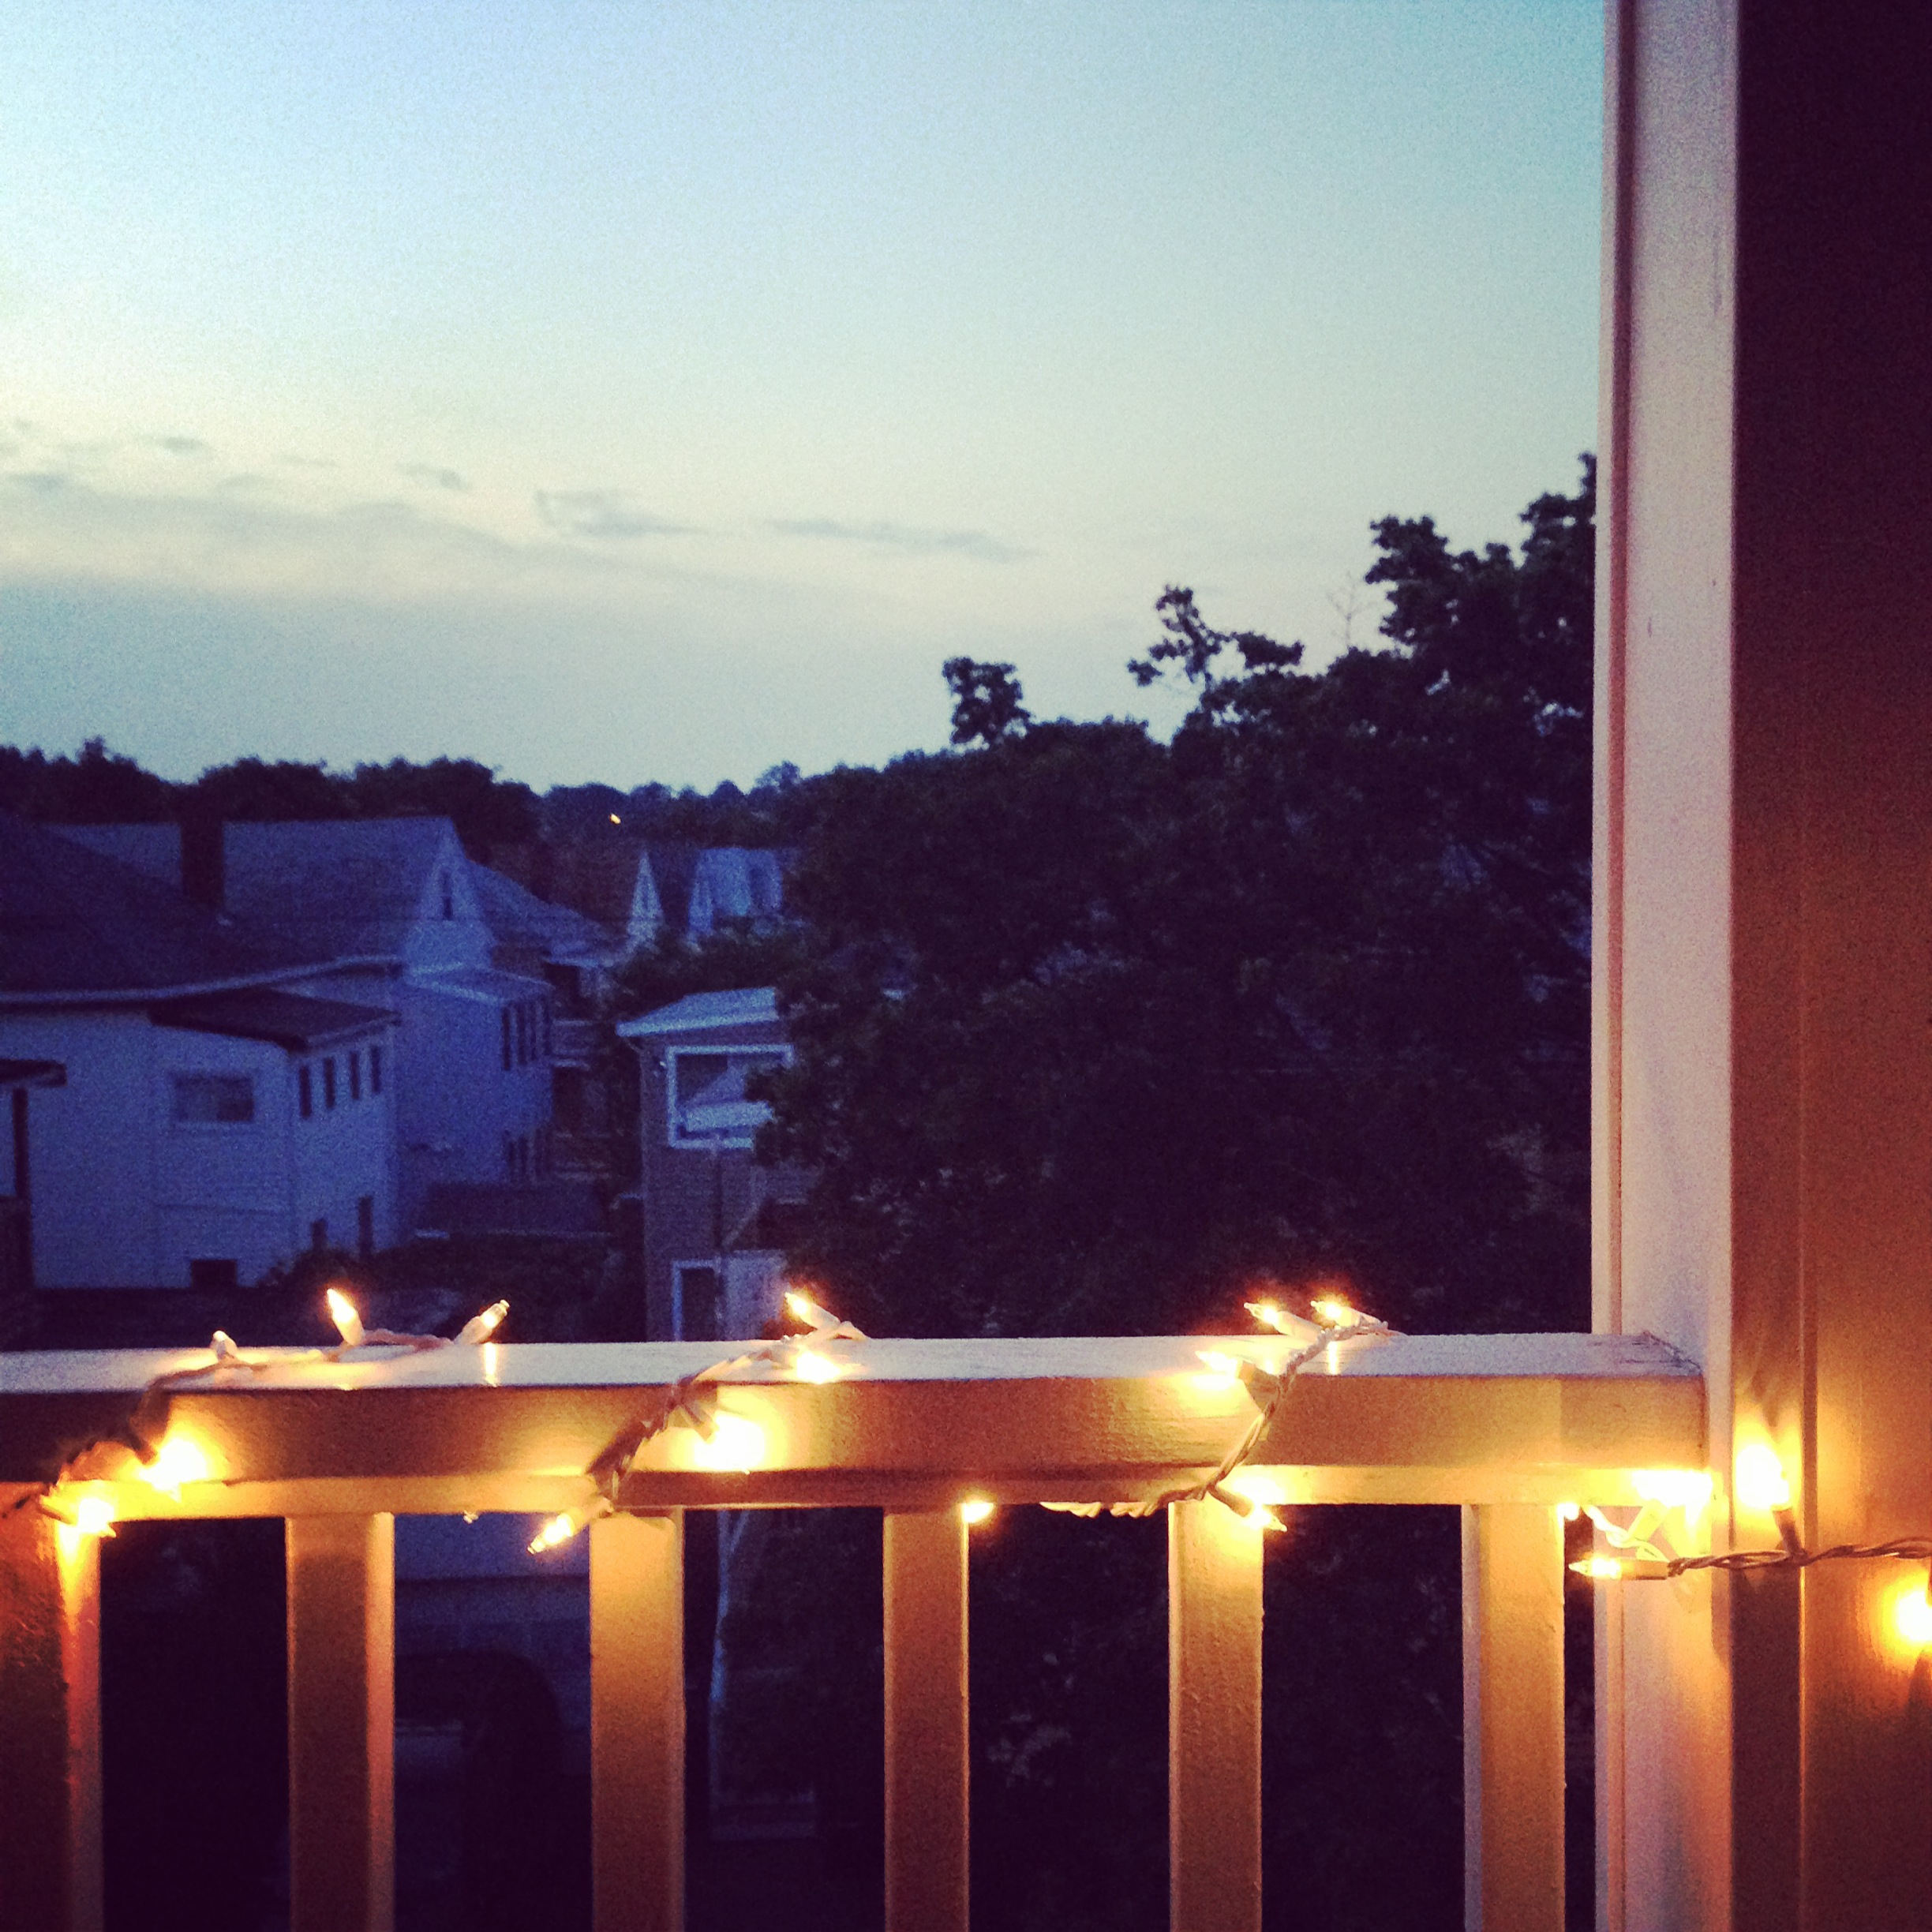 The view from our porch in Somerville, one summer night.